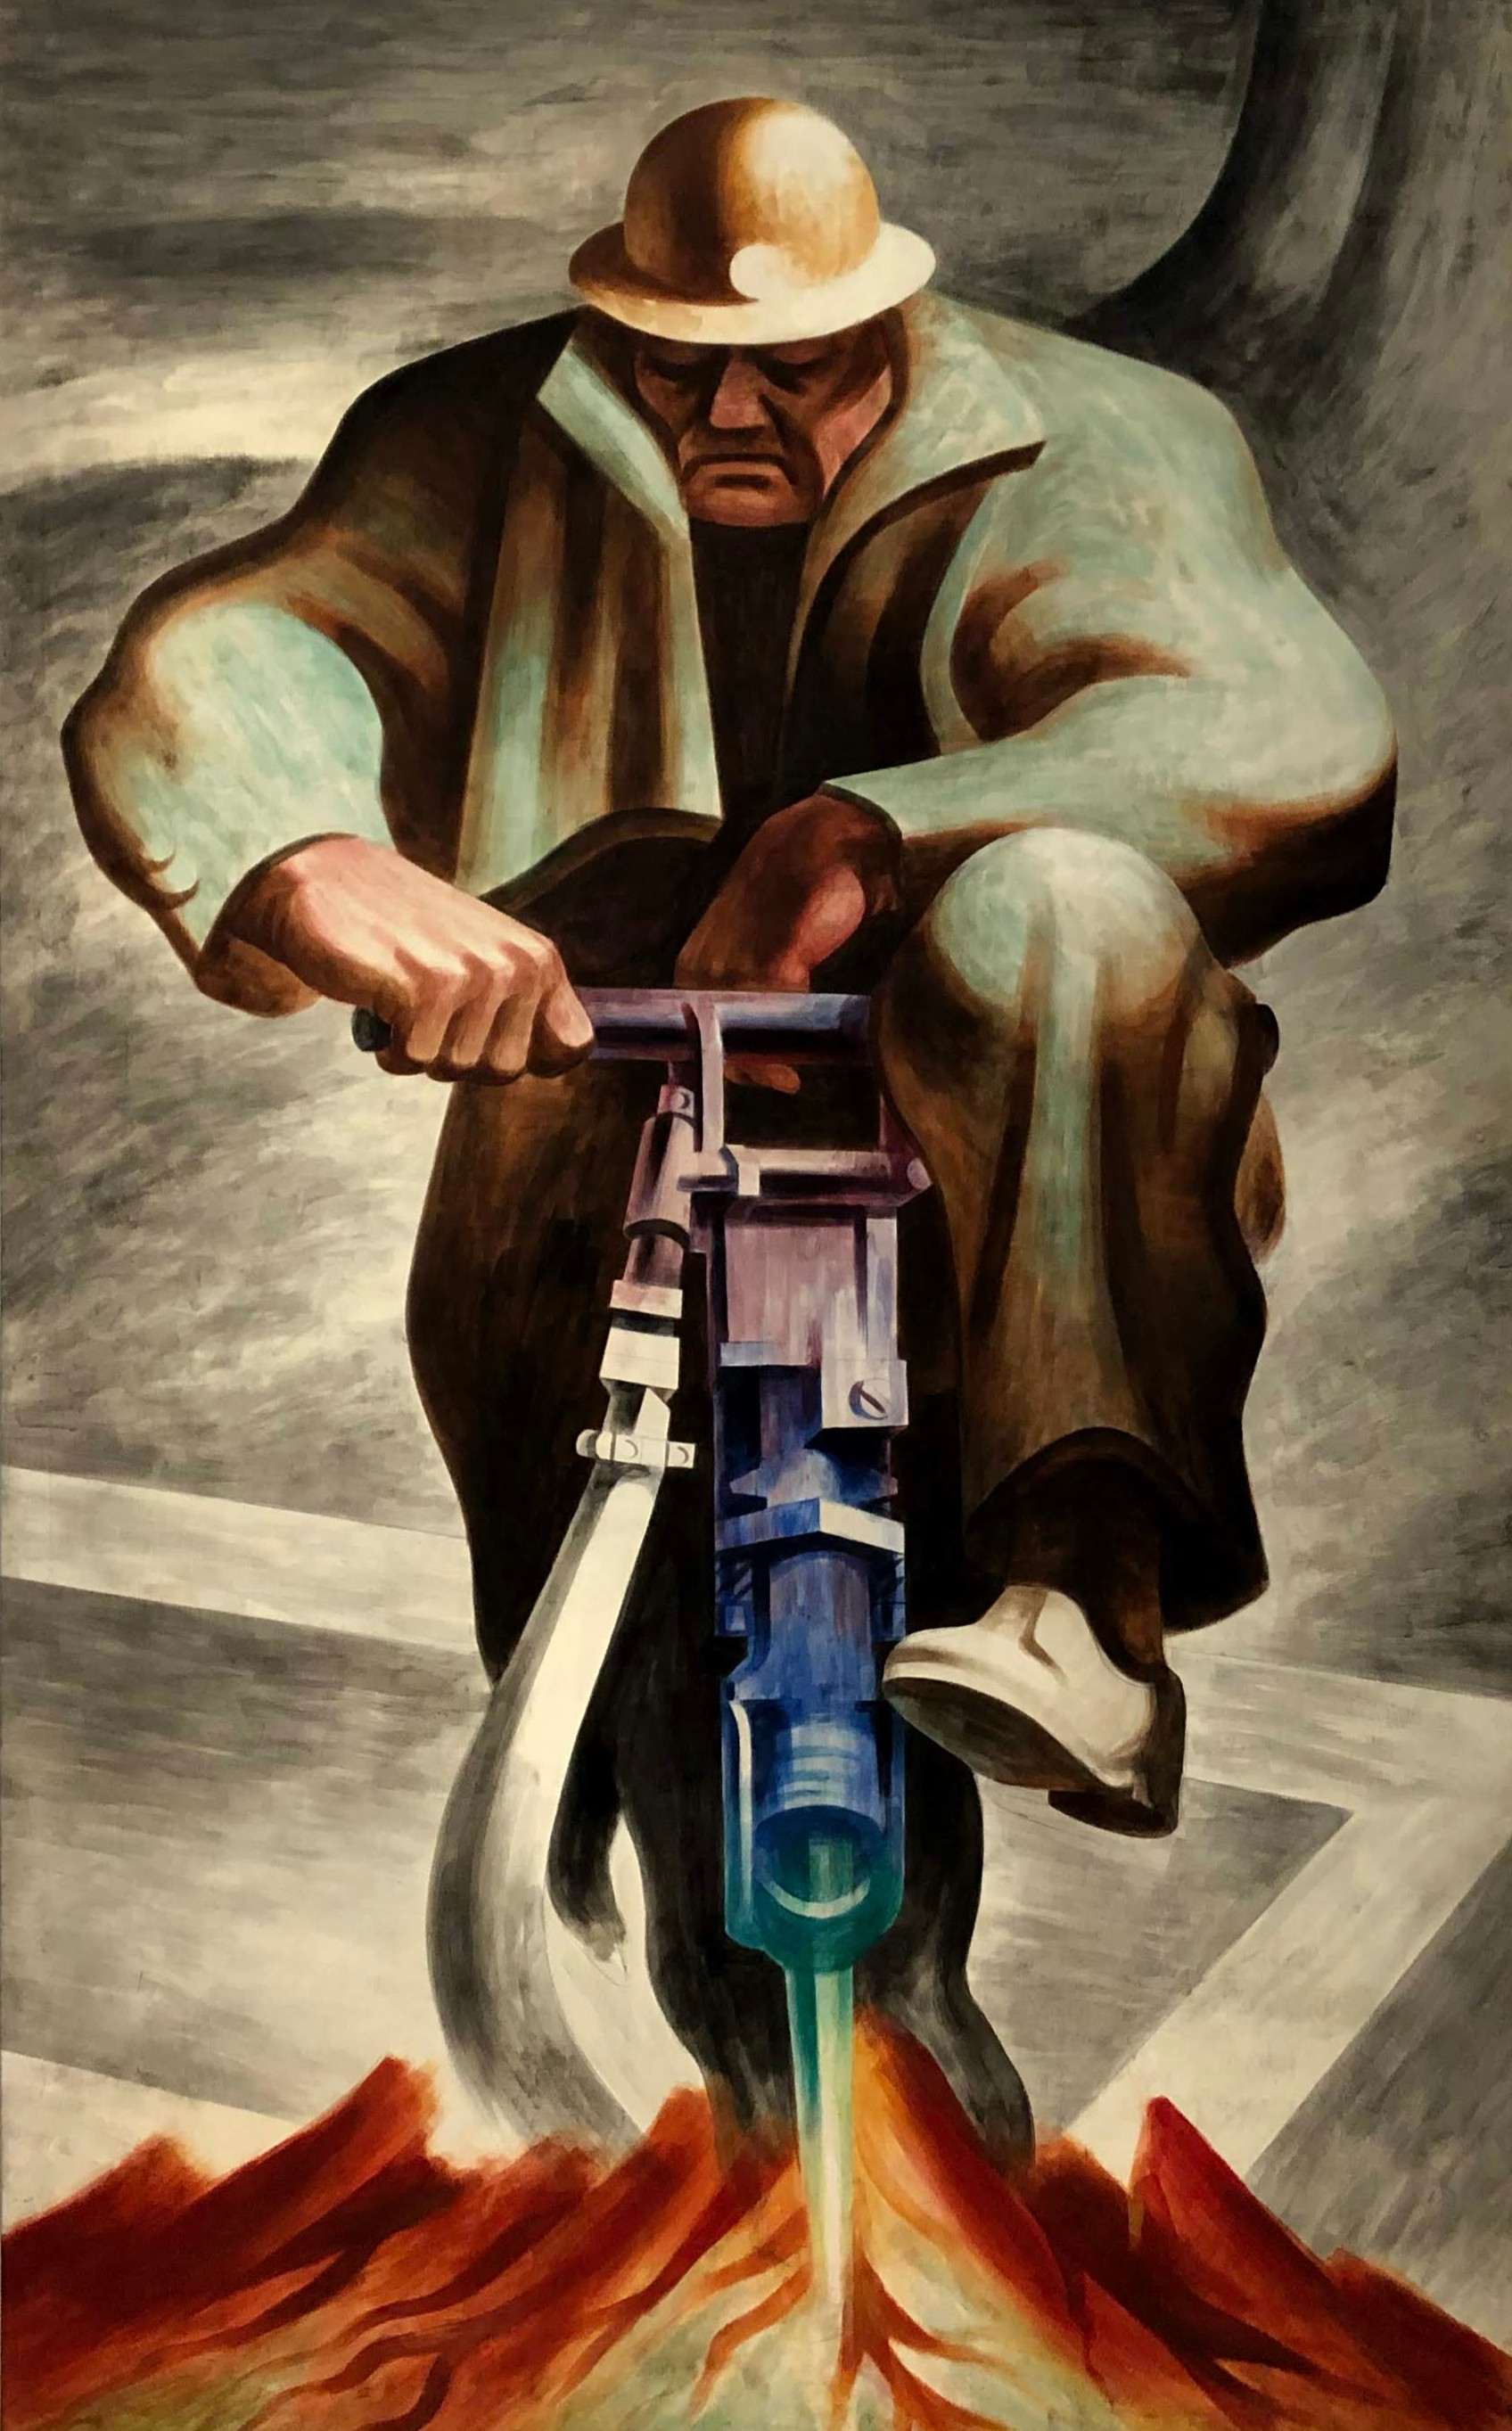 The Driller, Harold Lehman